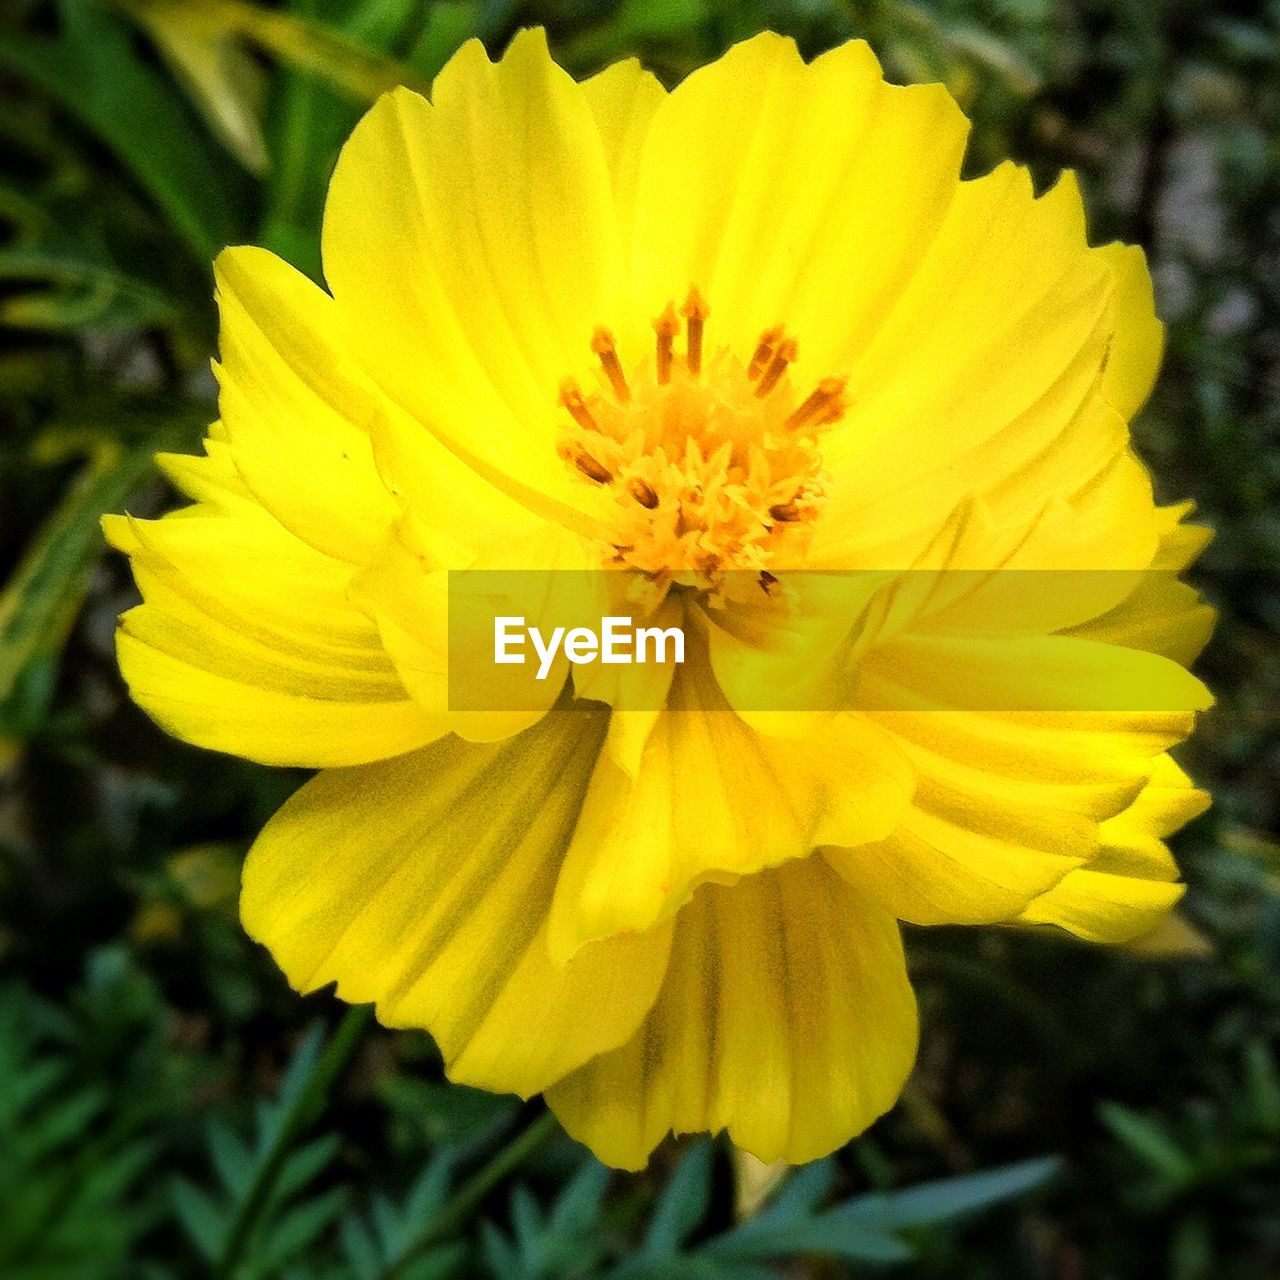 flower, yellow, petal, nature, growth, fragility, flower head, beauty in nature, plant, freshness, blooming, pollen, no people, outdoors, close-up, exoticism, day